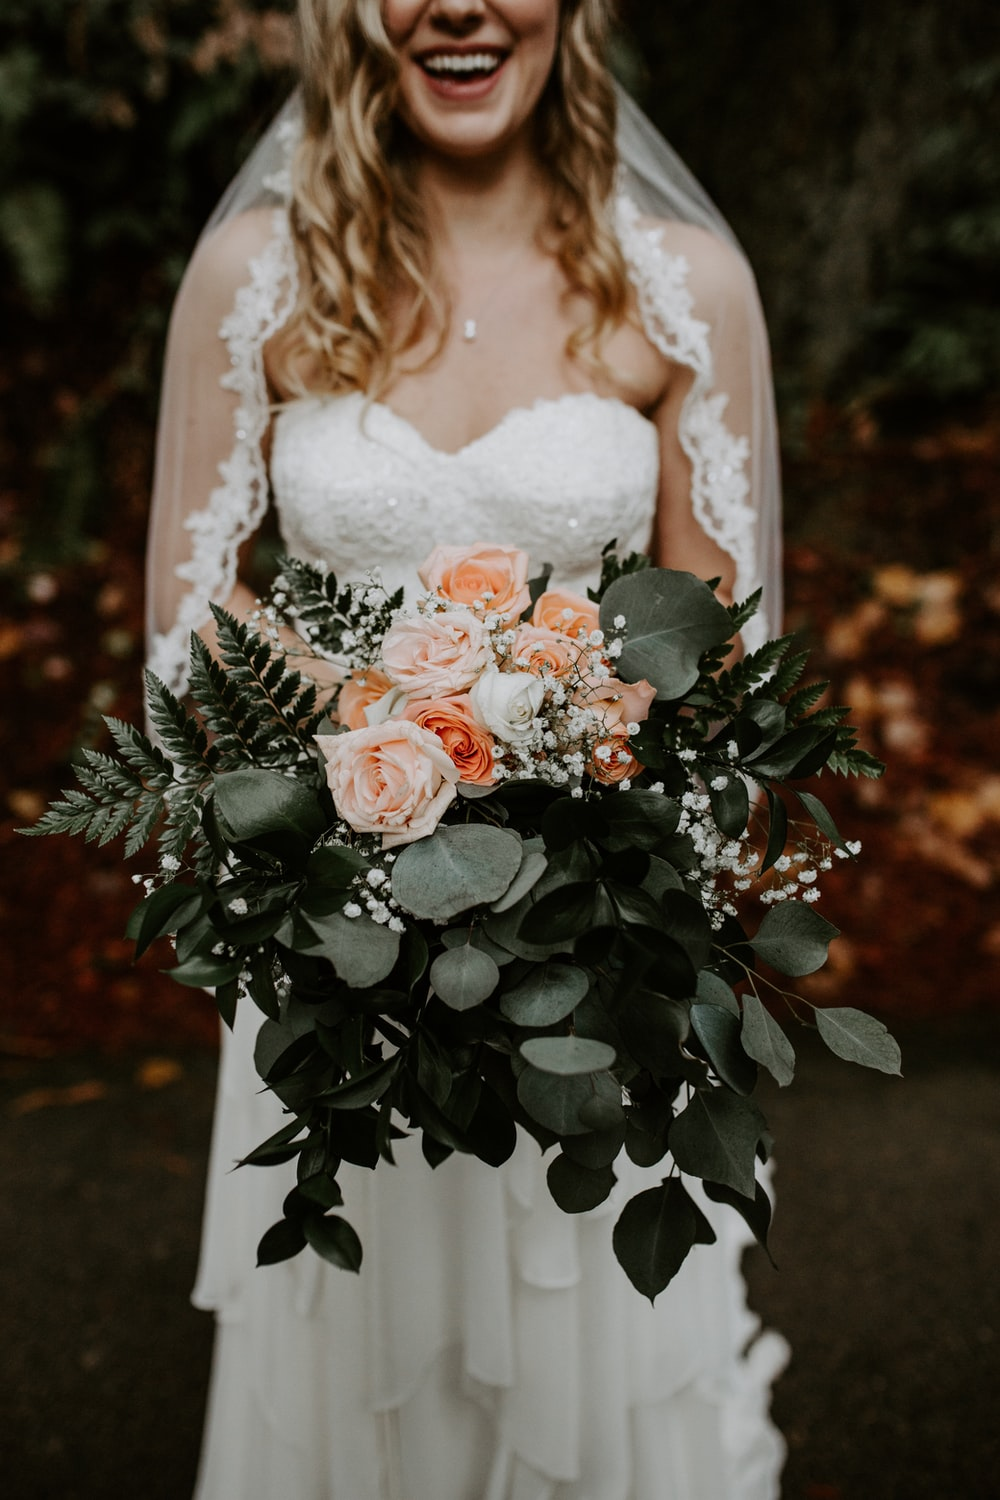 woman wearing wedding gown holding rose bouquet